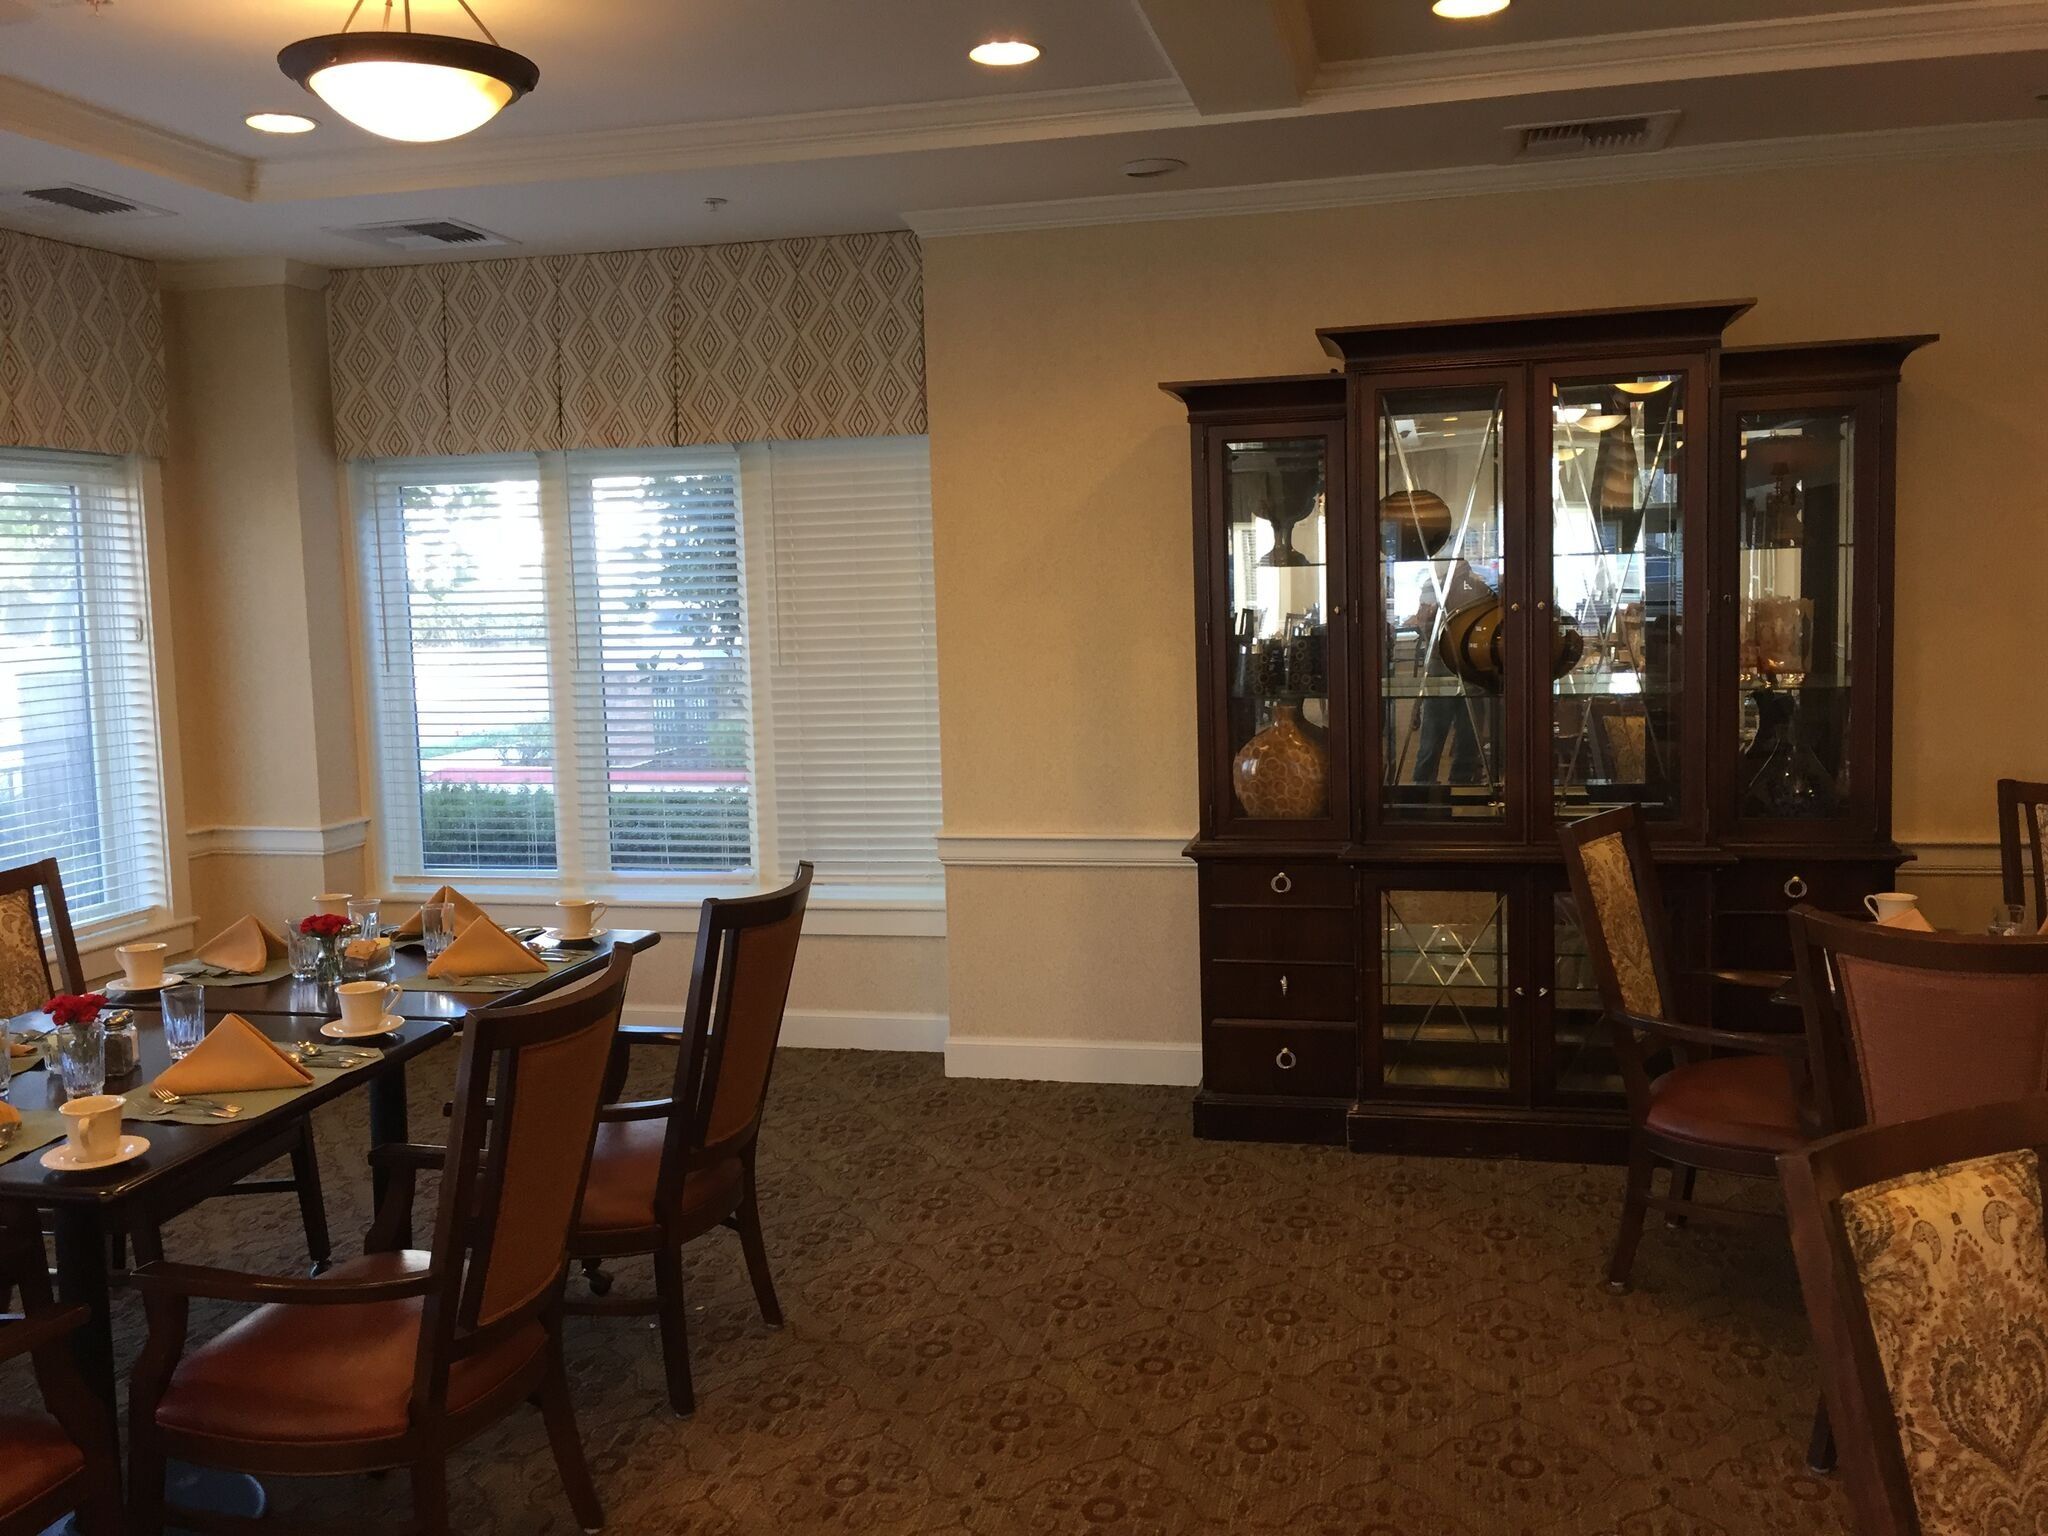 Sunrise Senior Living wallcovering san francisco bay area commercial wallcoverings fairfield vacaville ca